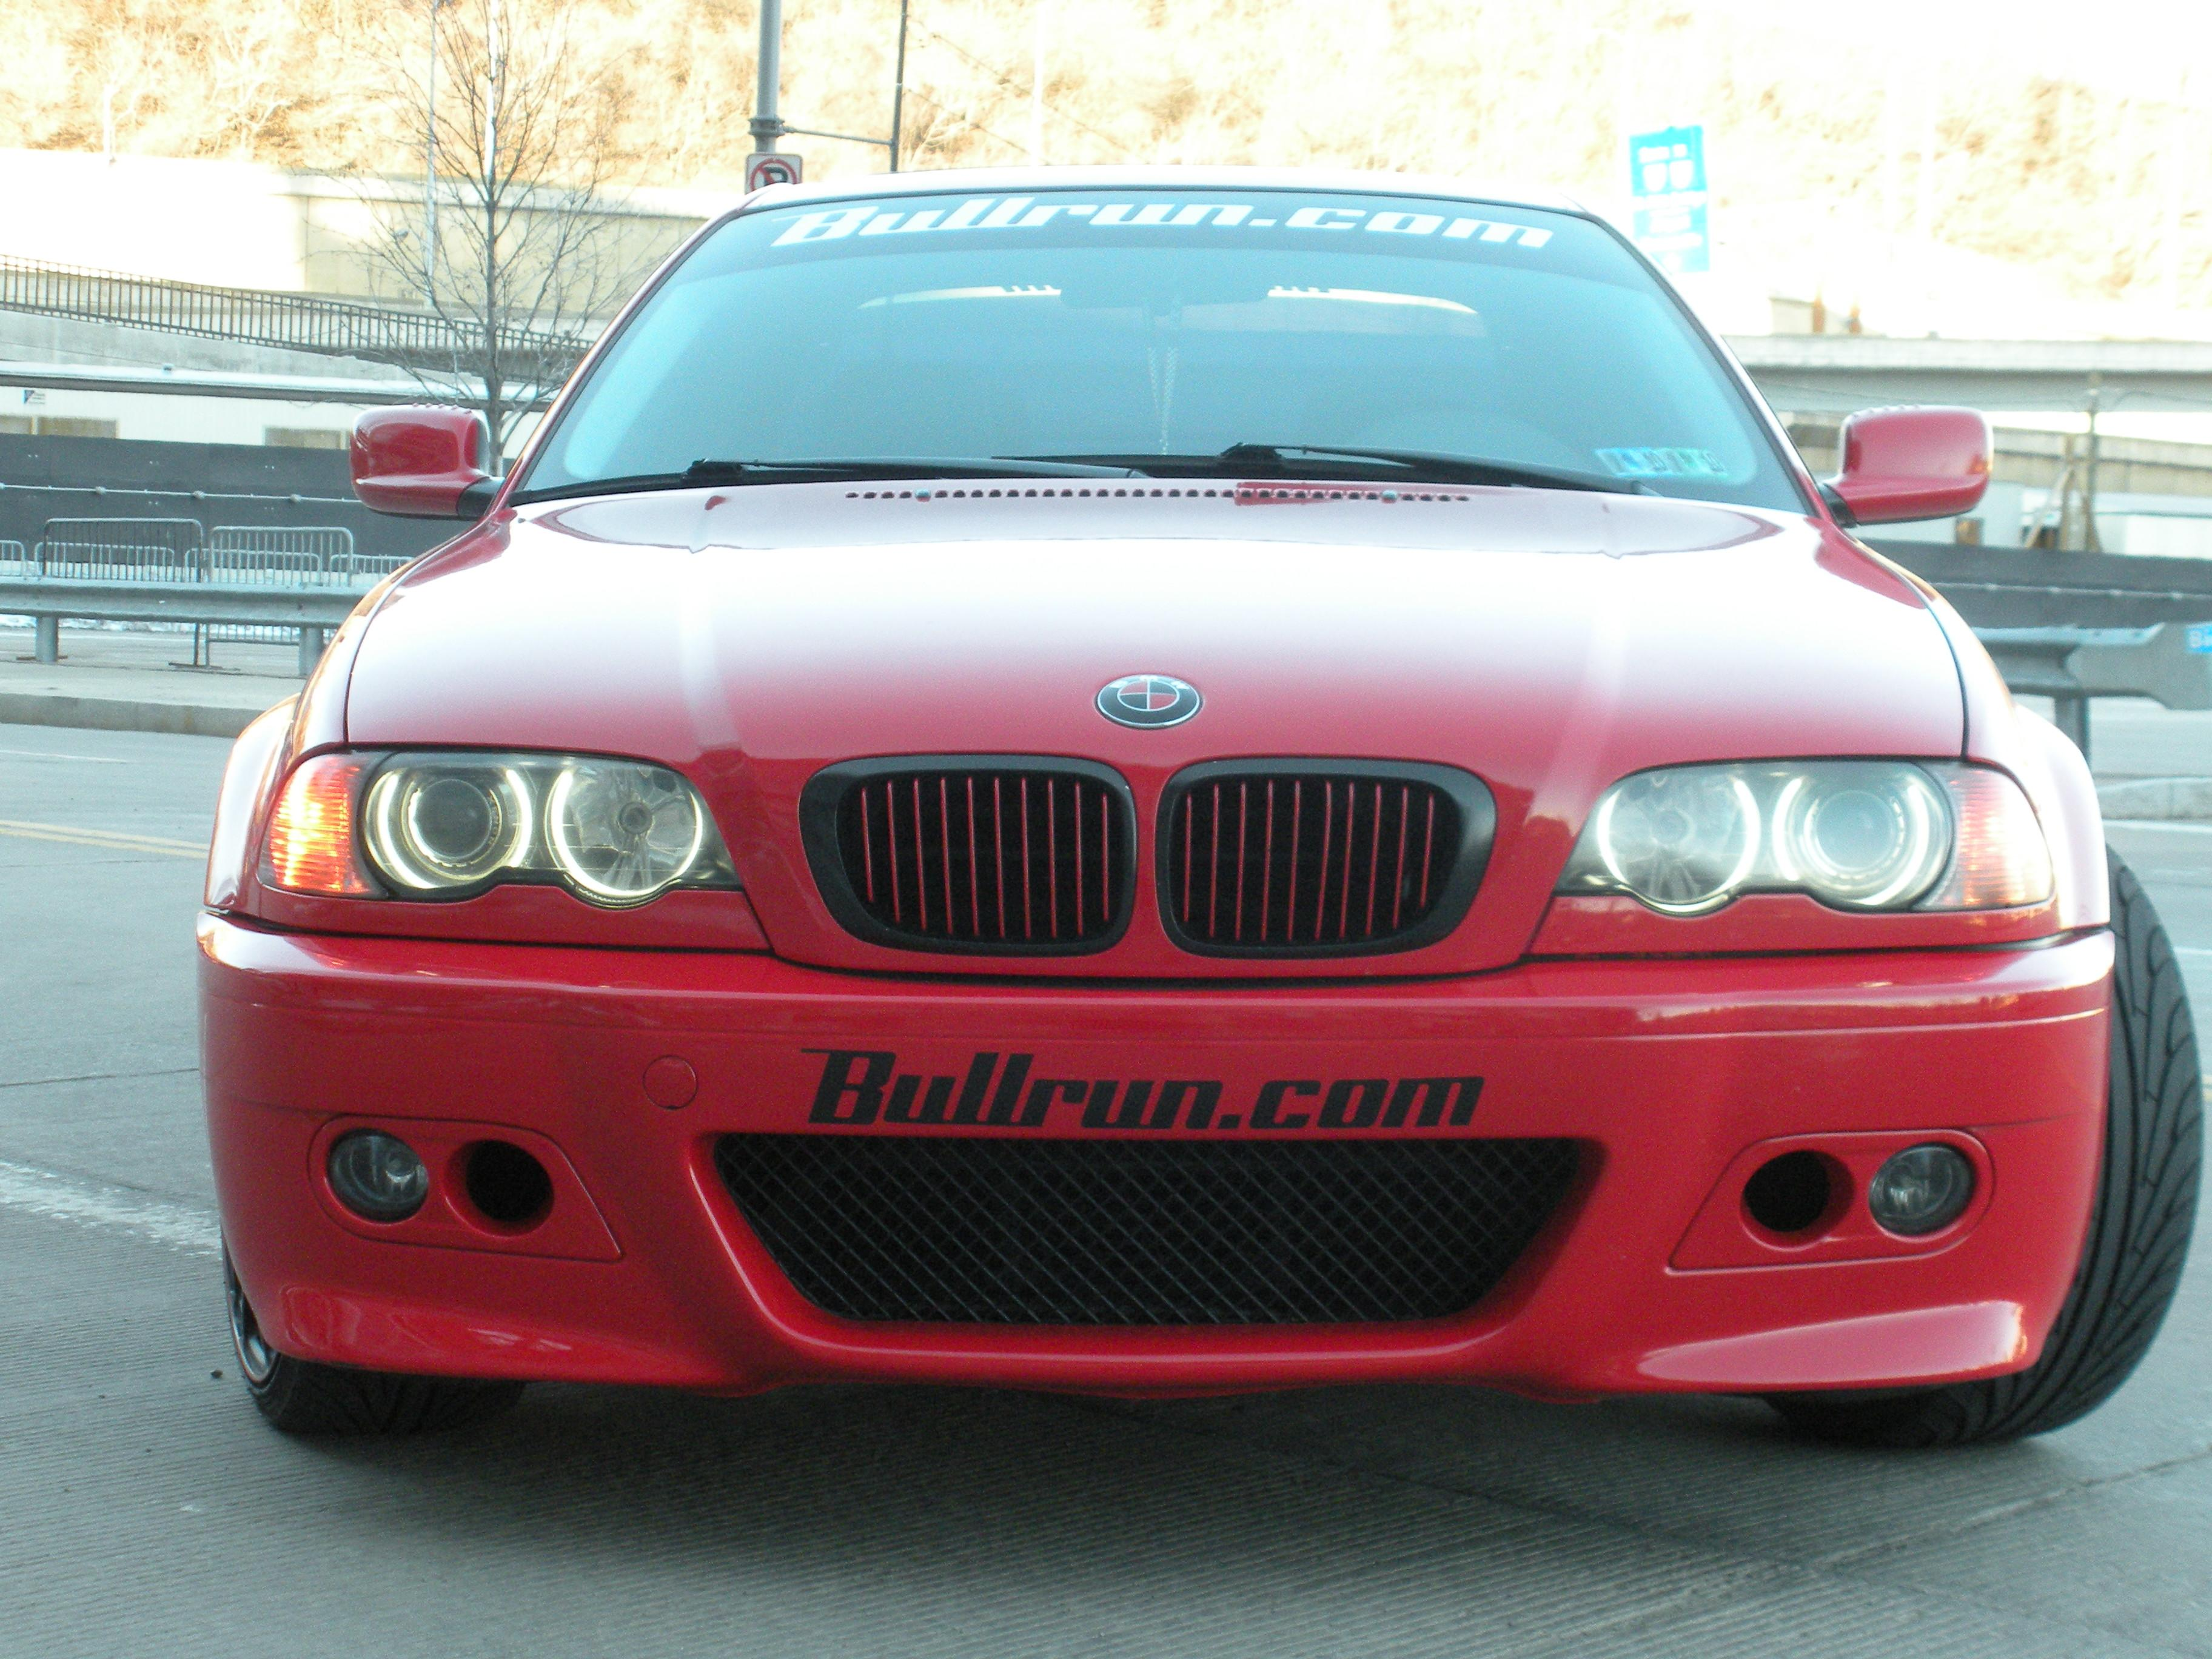 TeamBMW's 2000 BMW 3 Series